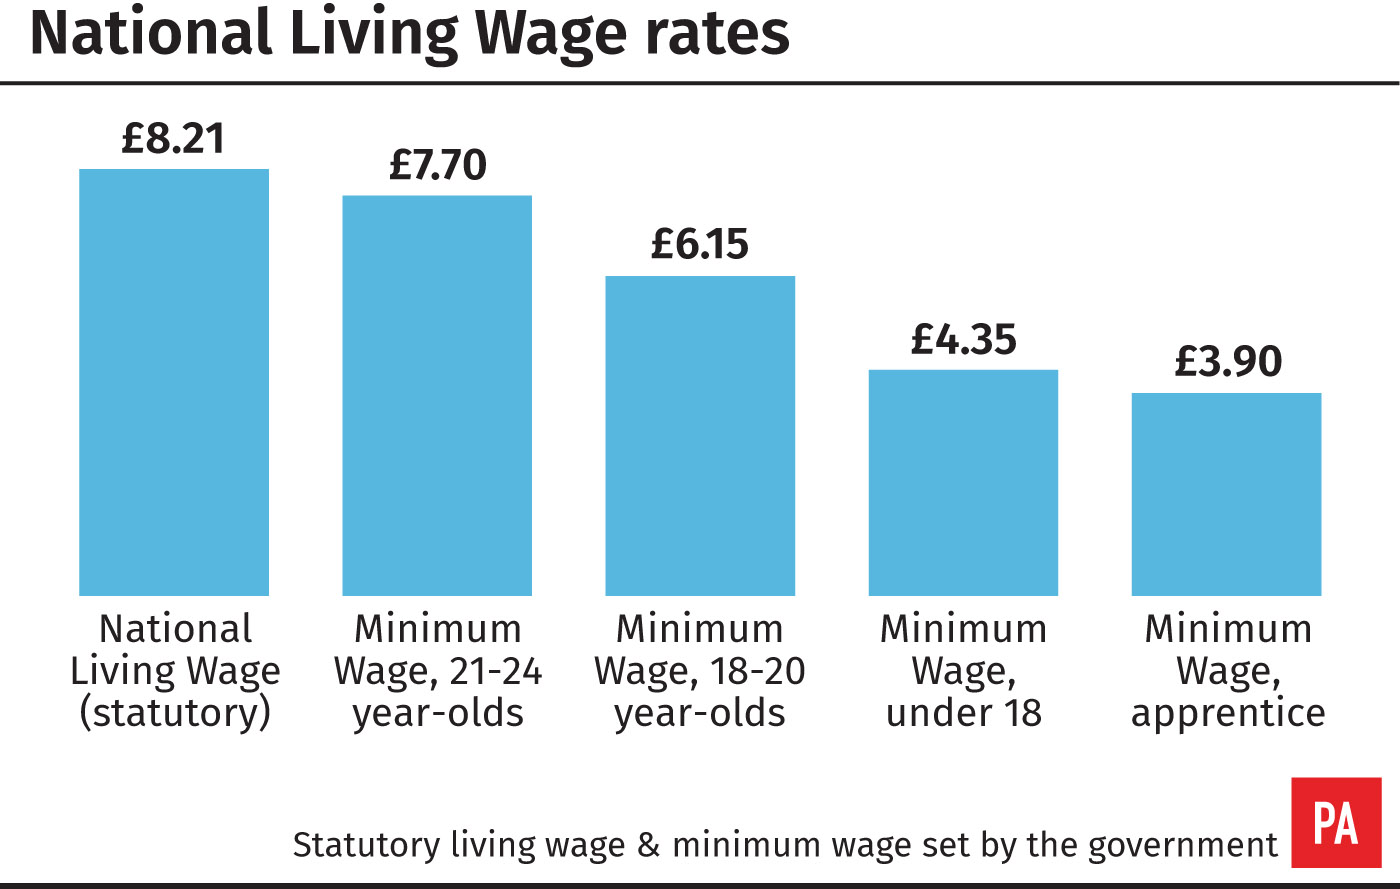 National Living Wage rates